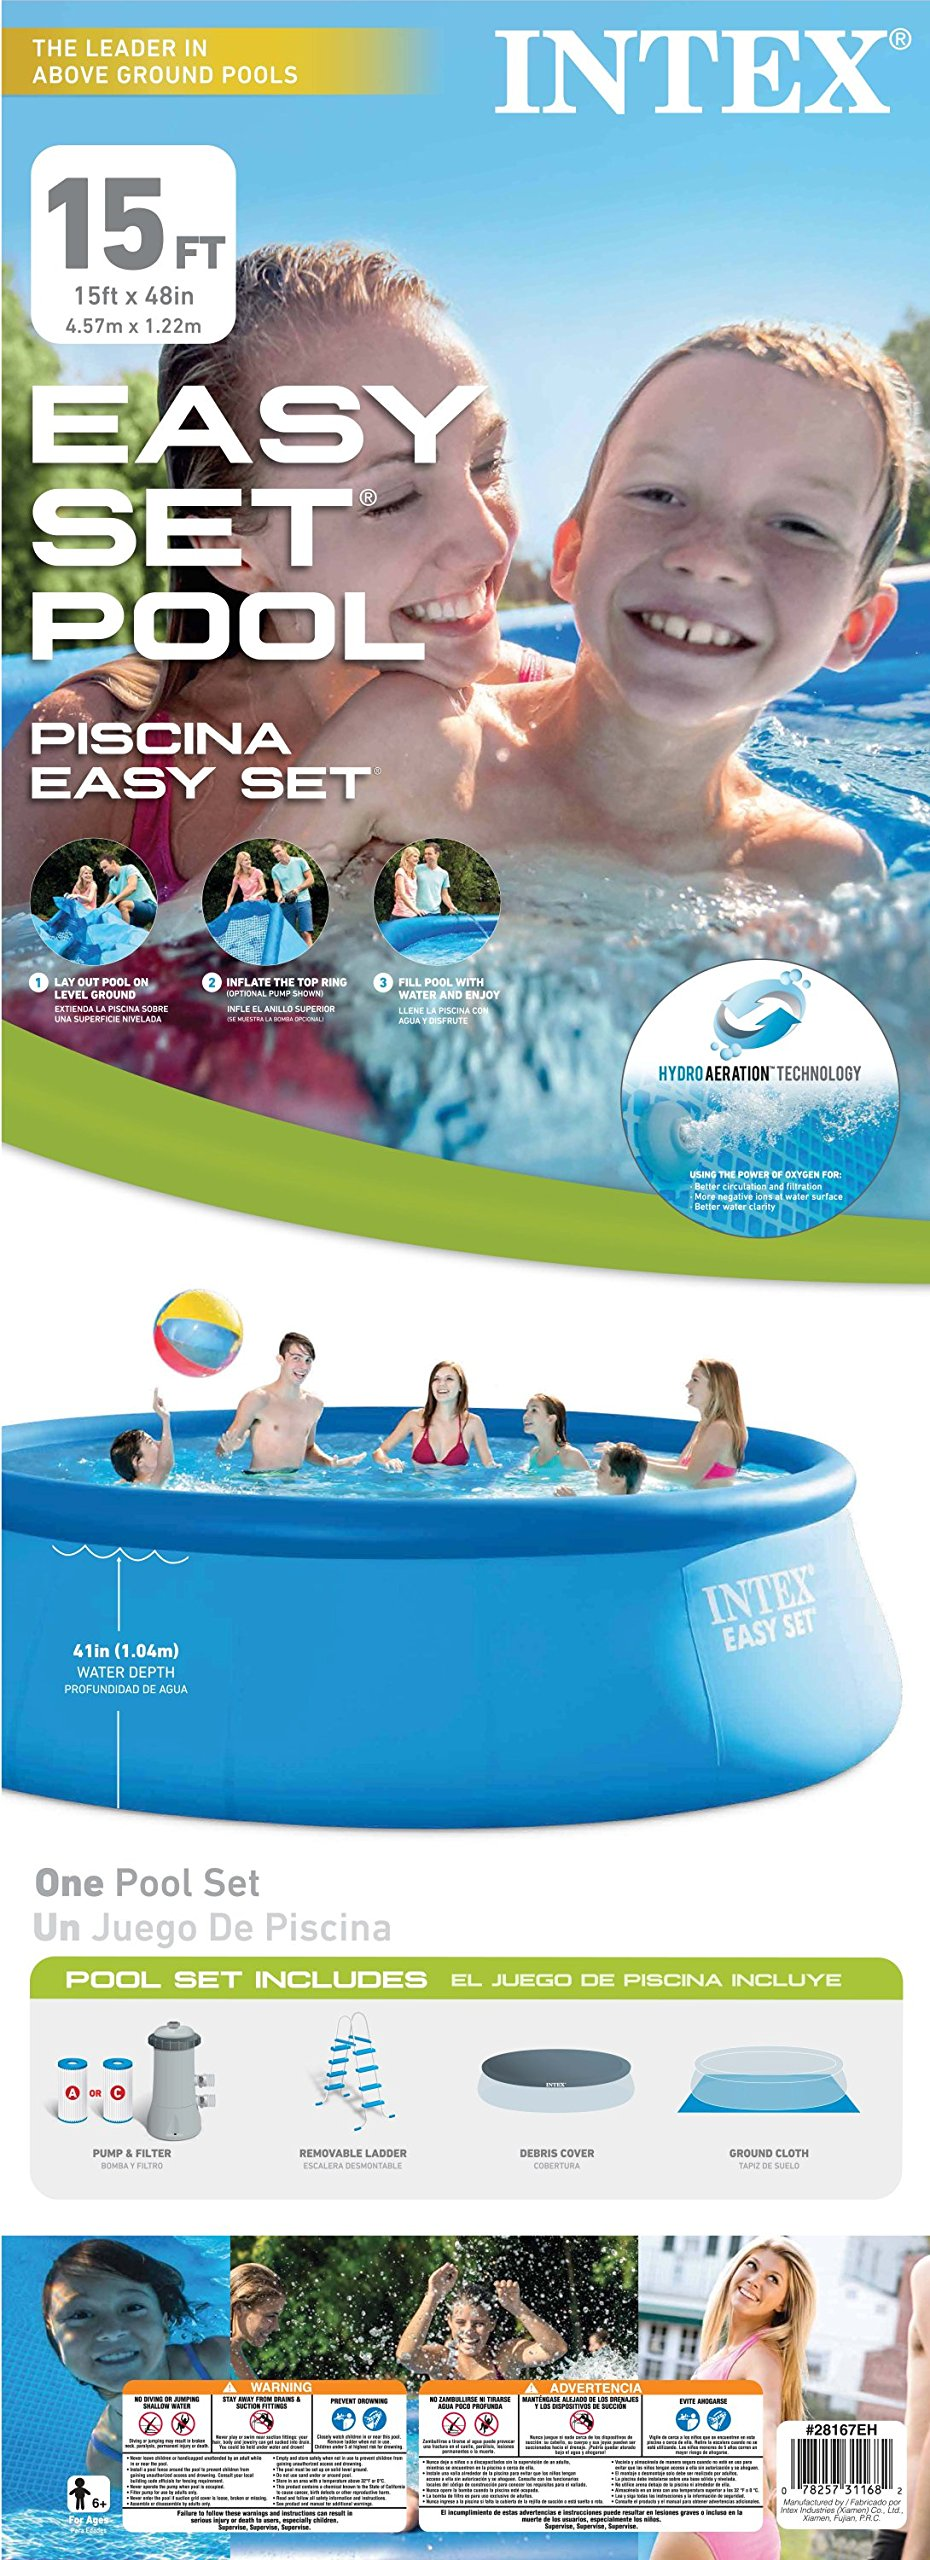 Intex 15' x 48'' Easy Set Swimming Pool Kit w/ 1000 GPH Filter Pump & Skooba Vac